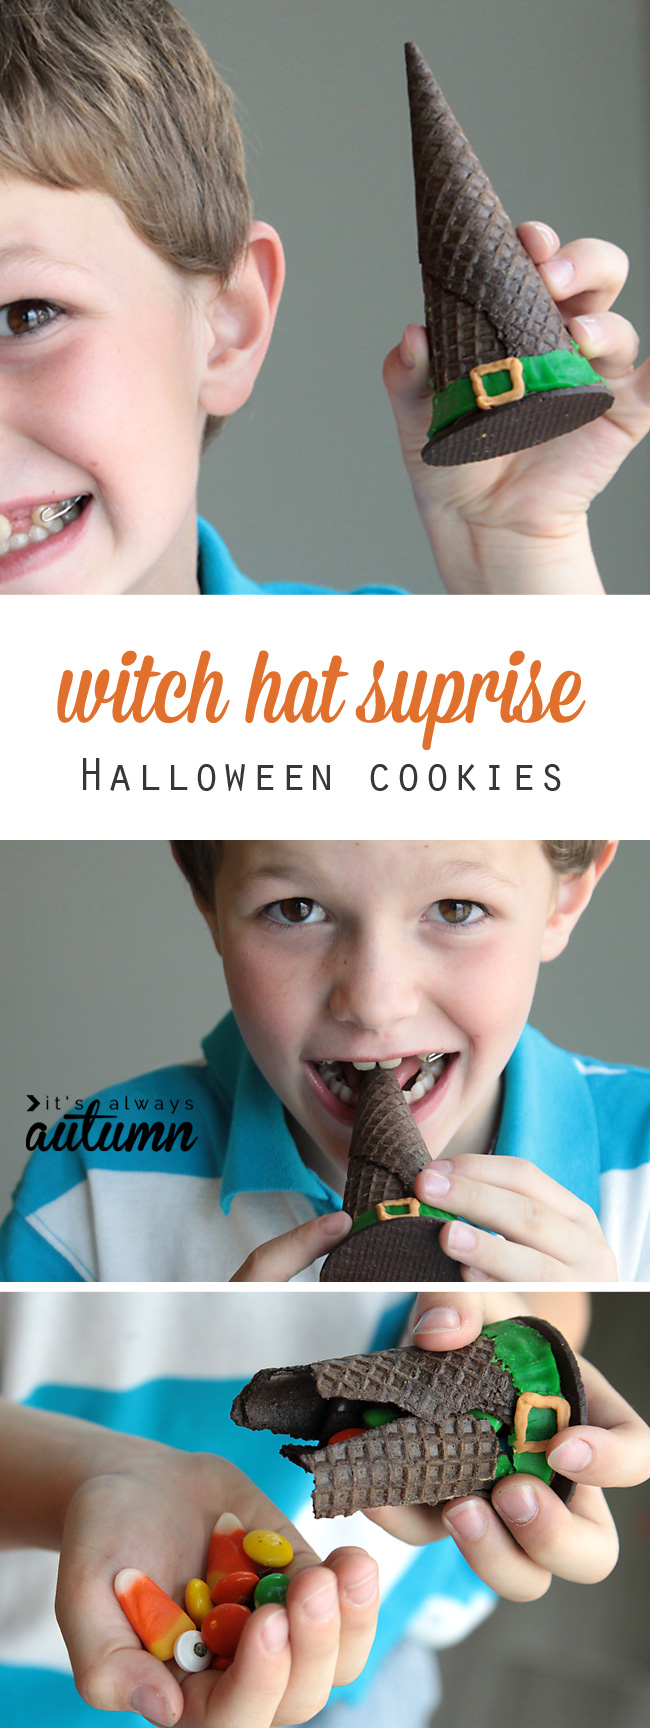 boy eating a cookie that looks like a witch hat